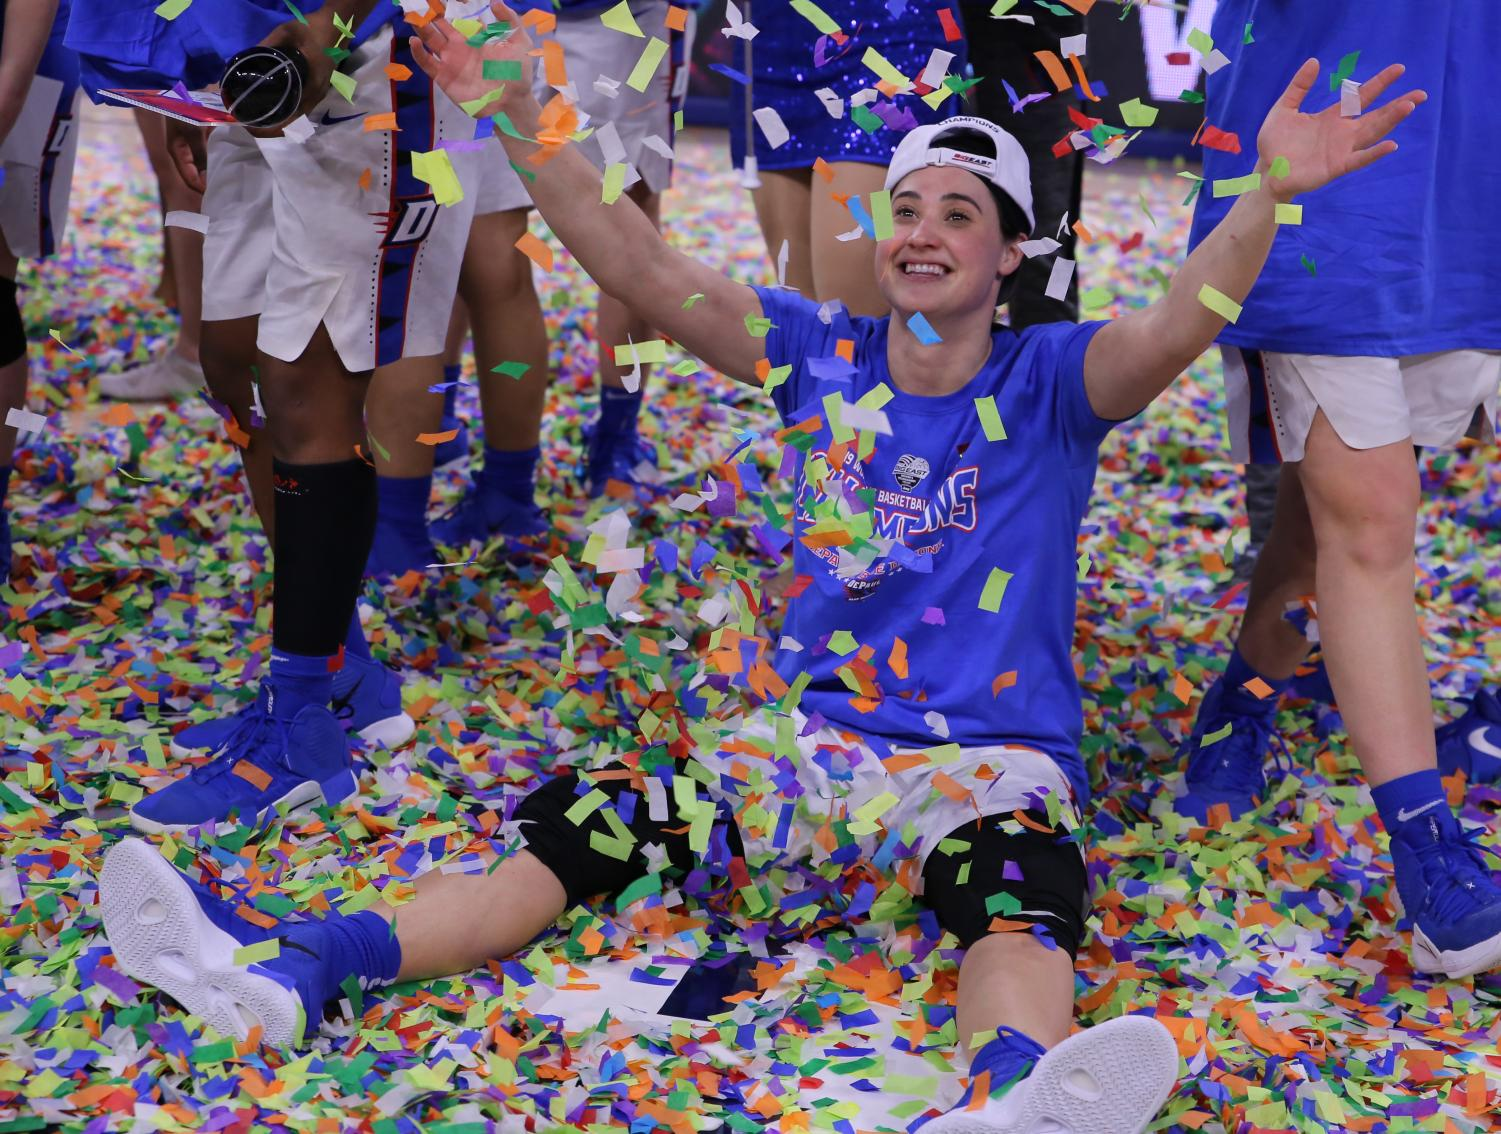 DePaul+senior+guard+Rebekah+Dahlman+sits+in+the+confetti+and+holds+her+hands+in+the+hair+after+the+Blue+Demons+topped+Marquette+in+the+Big+East+Tournament+championship+game+for+the+second+straight+year.+Alexa+Sandler+%7C+The+DePaulia